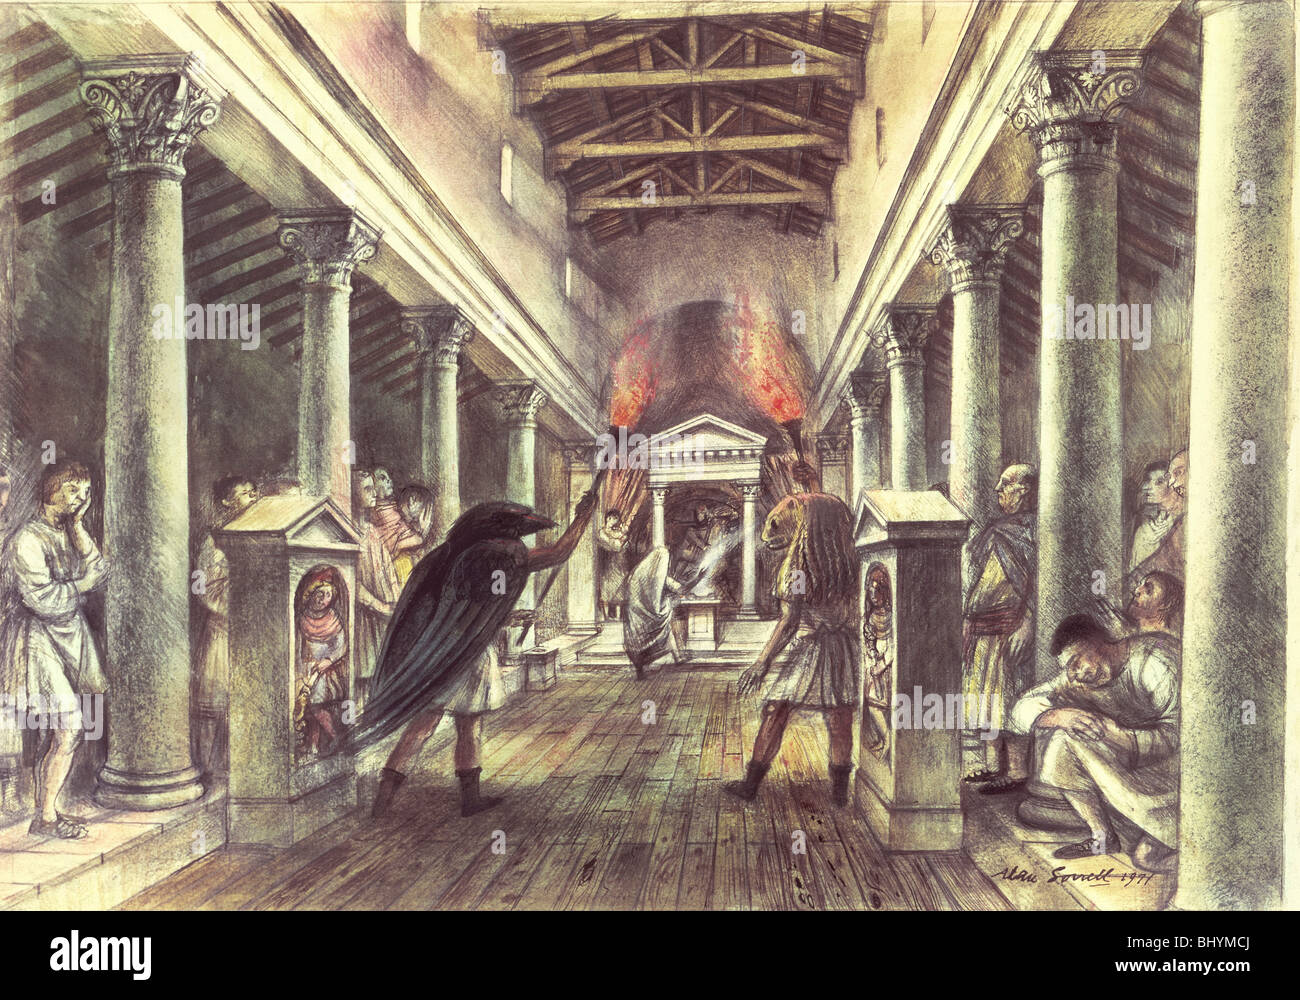 Interior of the Temple of Mithras. - Stock Image